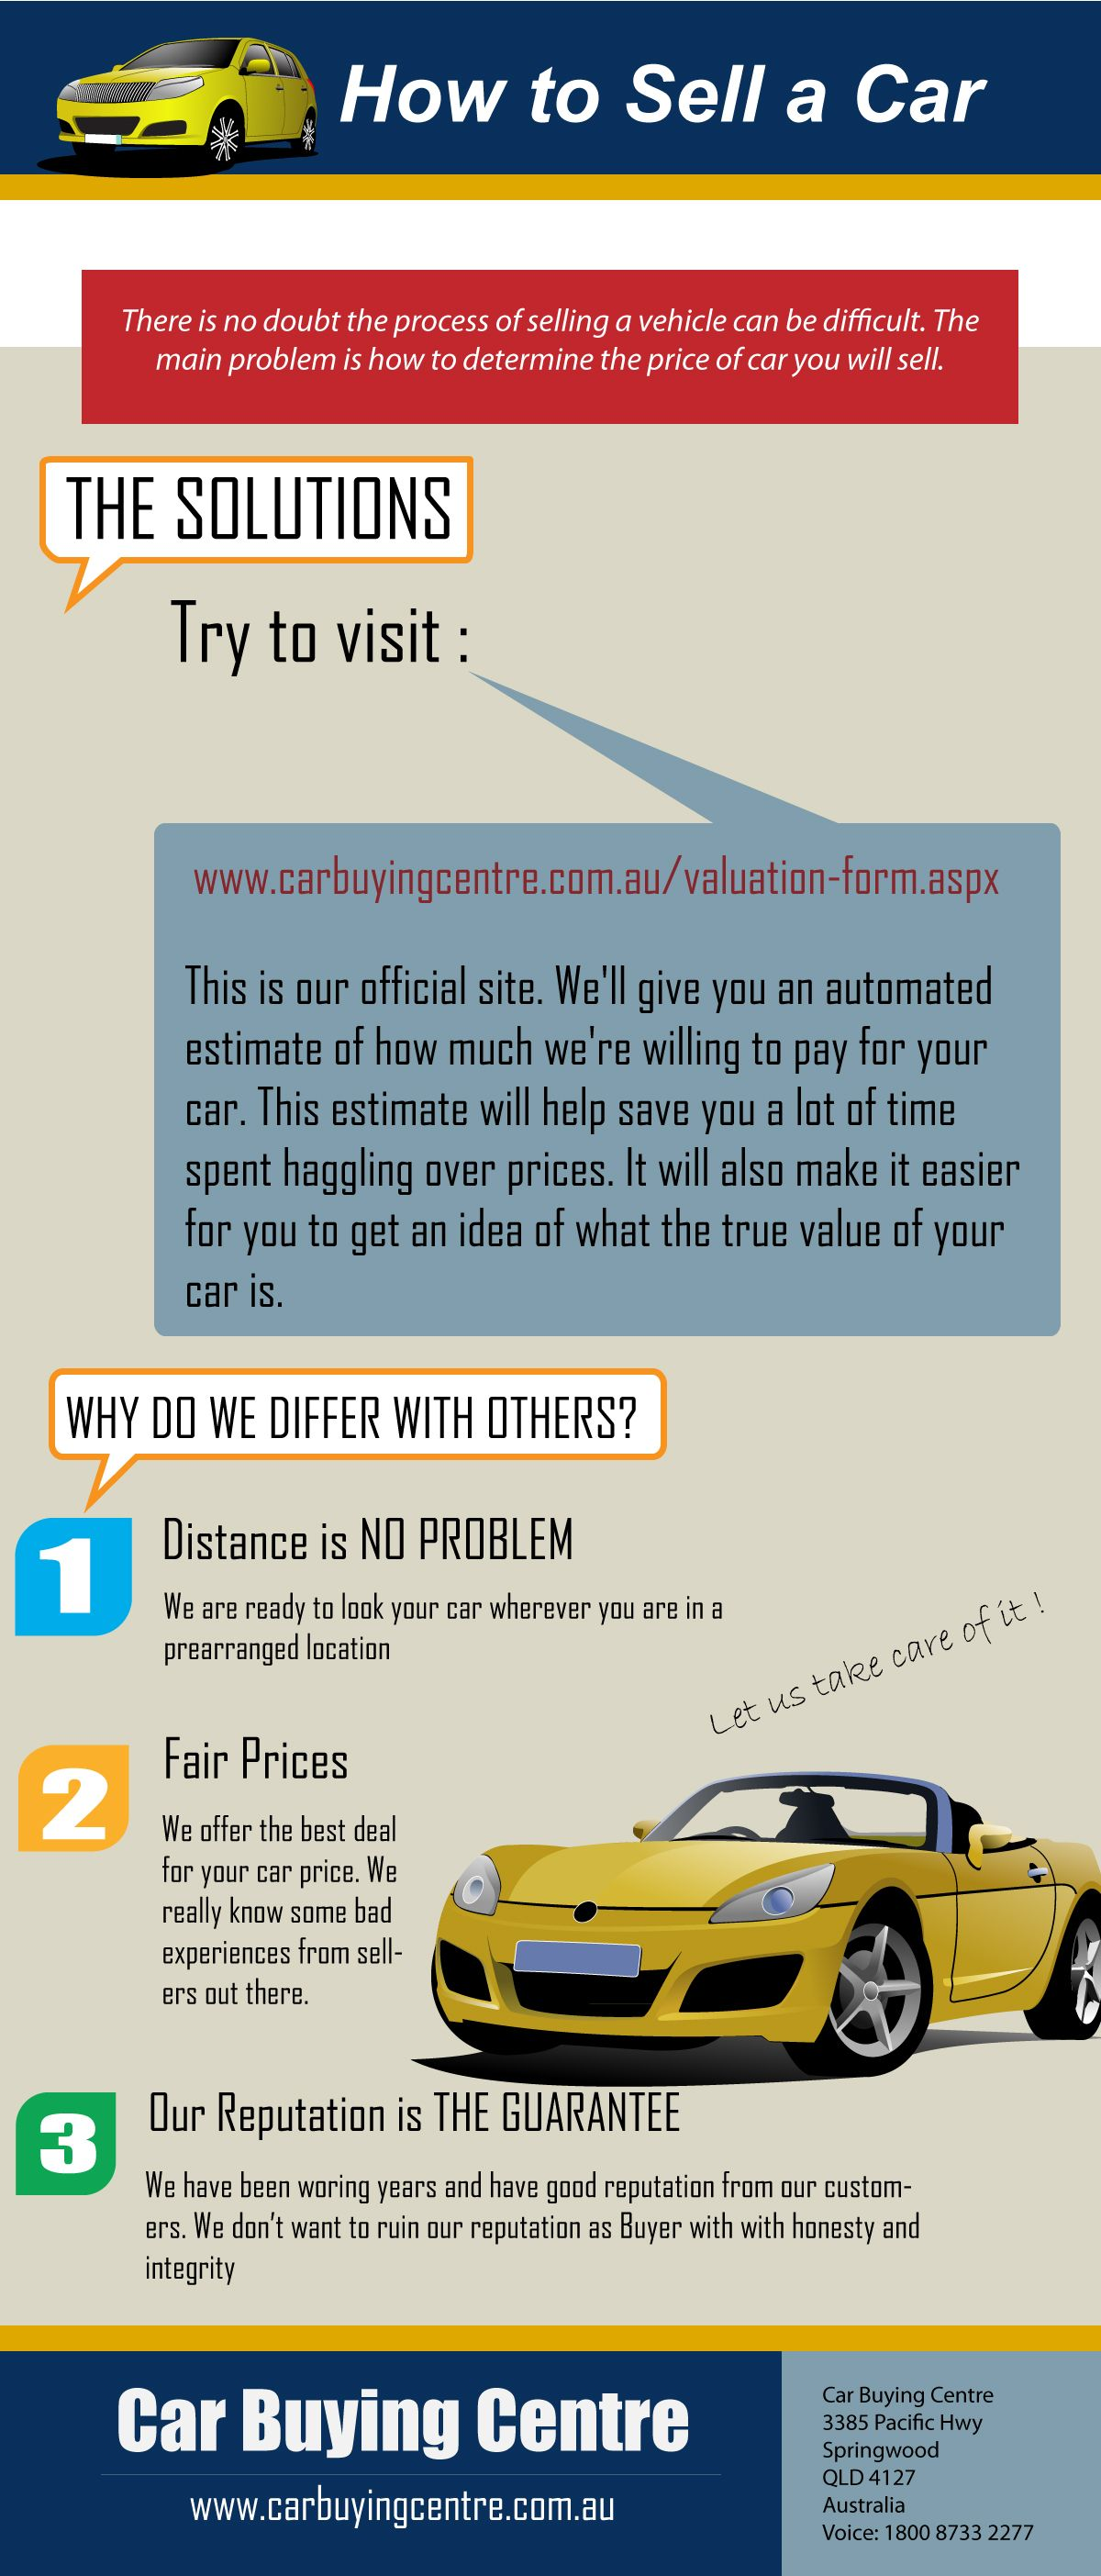 Quick tips and advice on how to sell car Brought to you by the